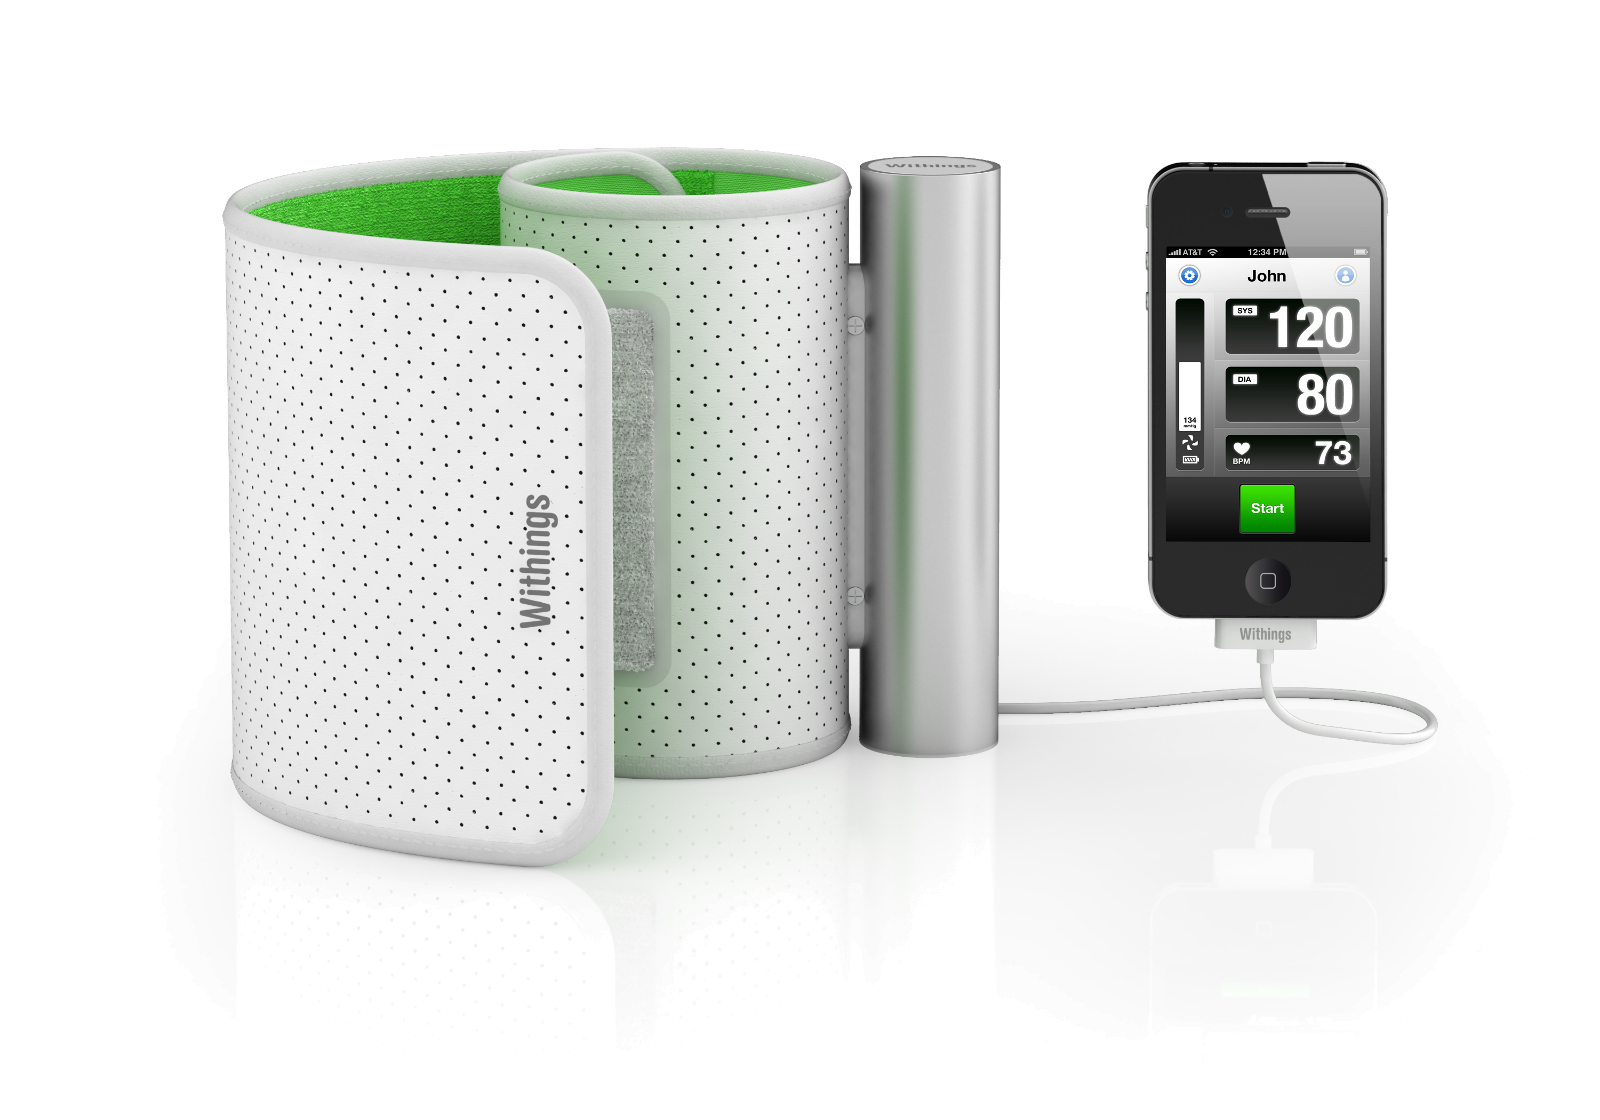 Withings - Misuratore di pressione per iPhone, iPad, iPod touch